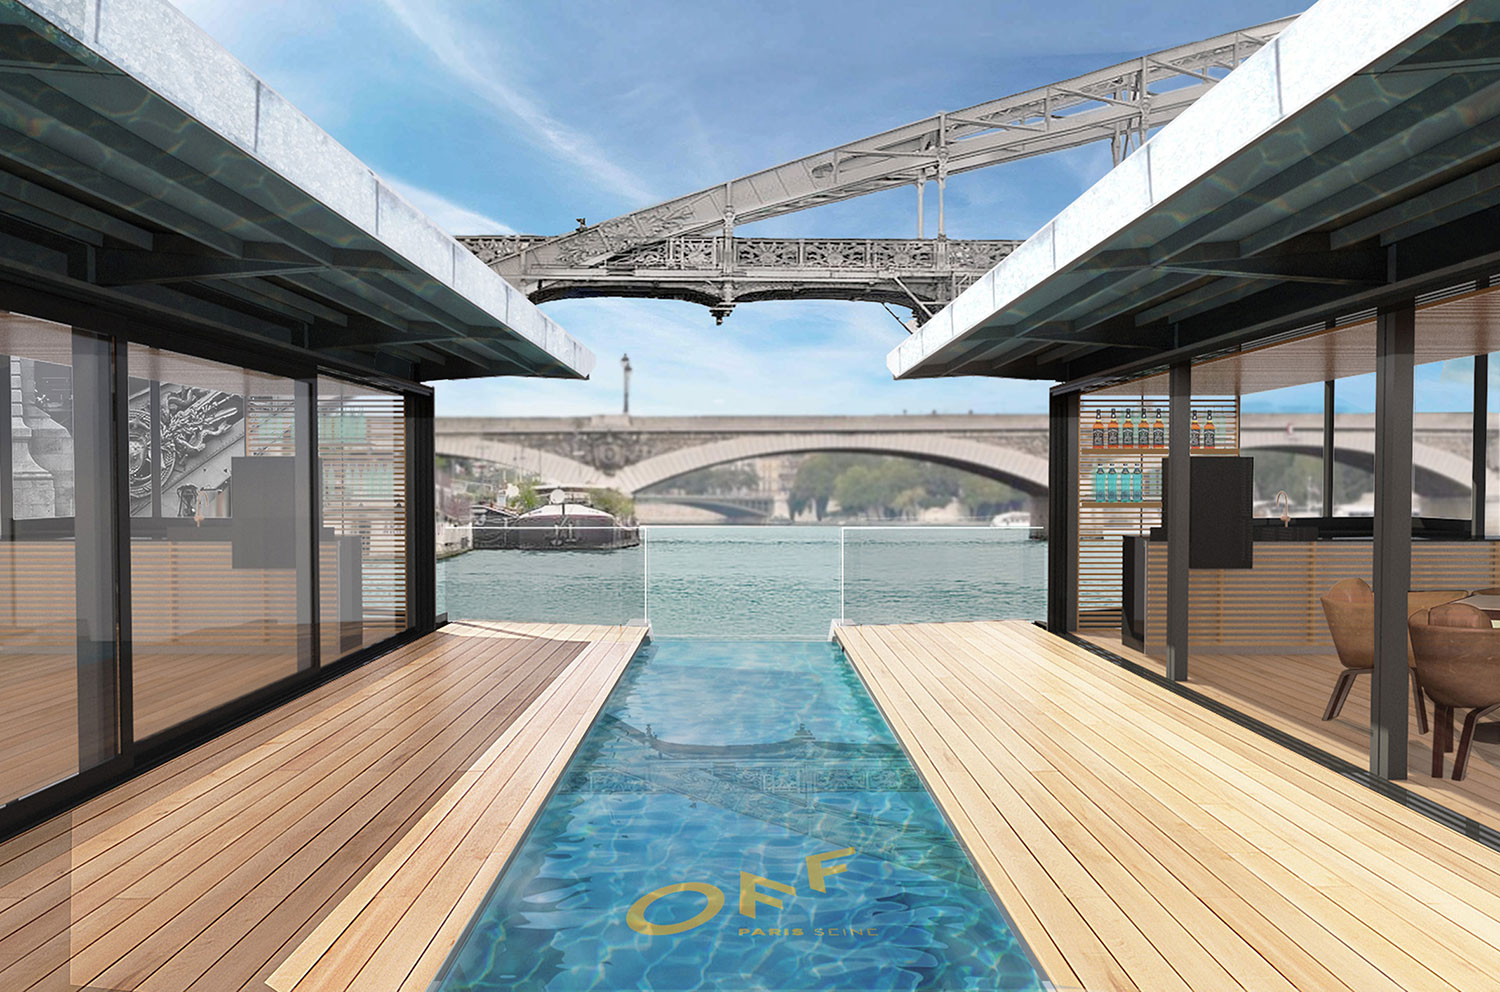 H tel 4 toiles off paris seine paris capitale for Piscine de vigneux sur seine